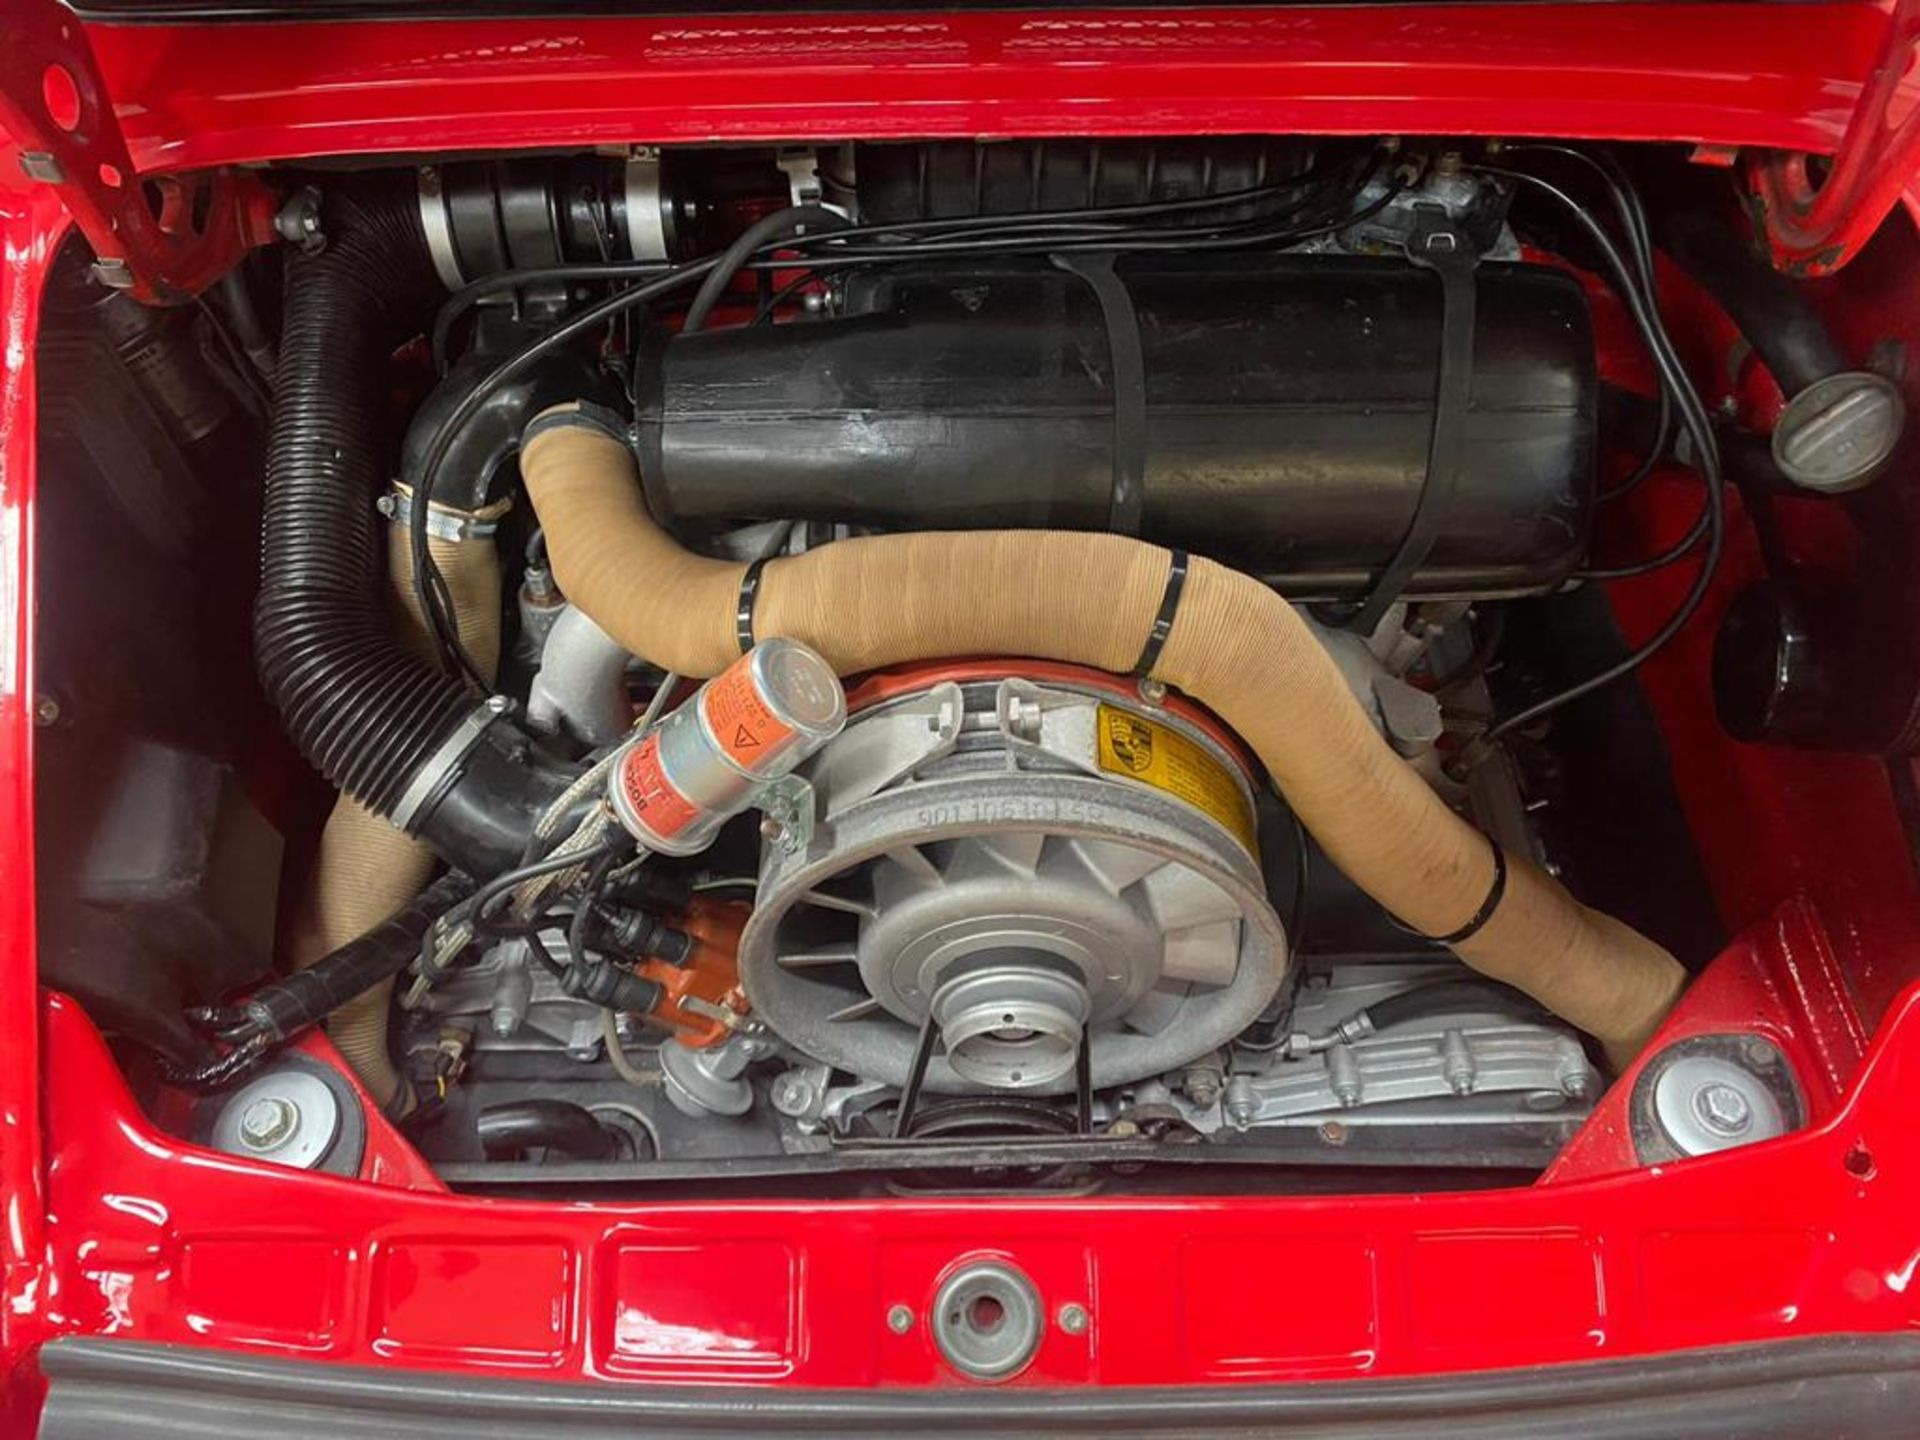 1980 Porsche 911 sc sport but has been fully rebuilt to be identical to a 1974 911 rsr *NO VAT* - Image 9 of 12